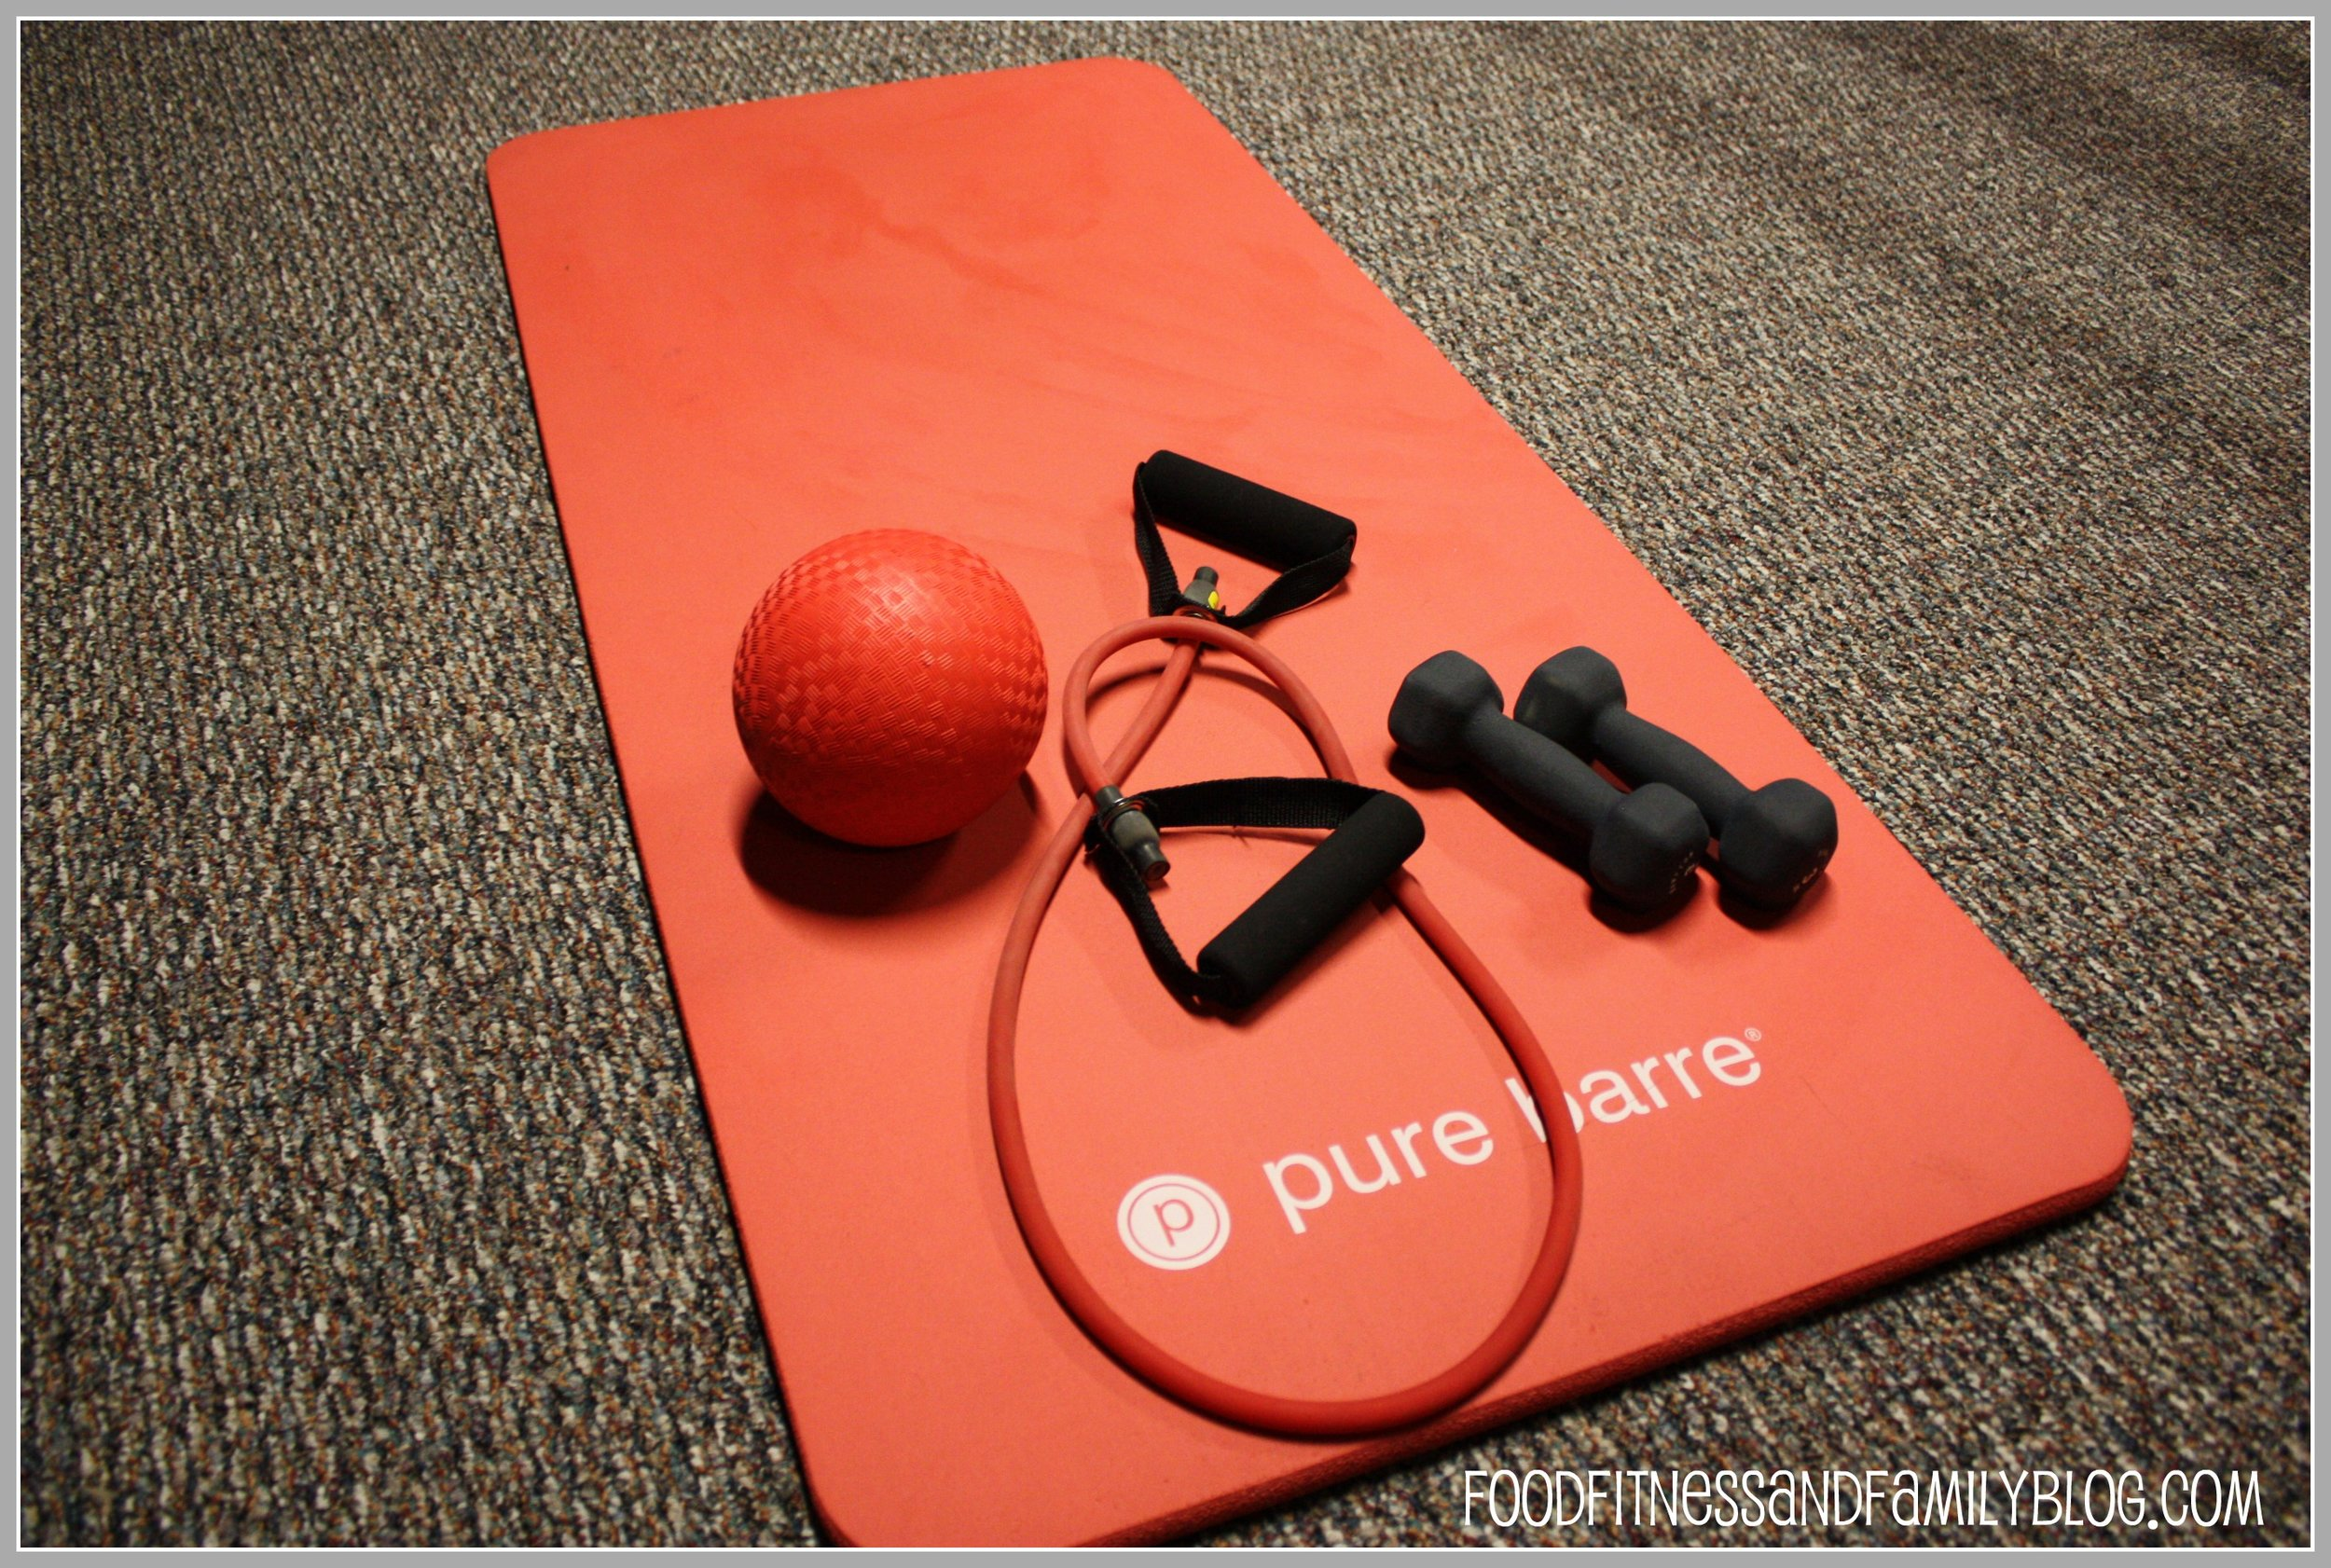 pure-barre-gear.jpg